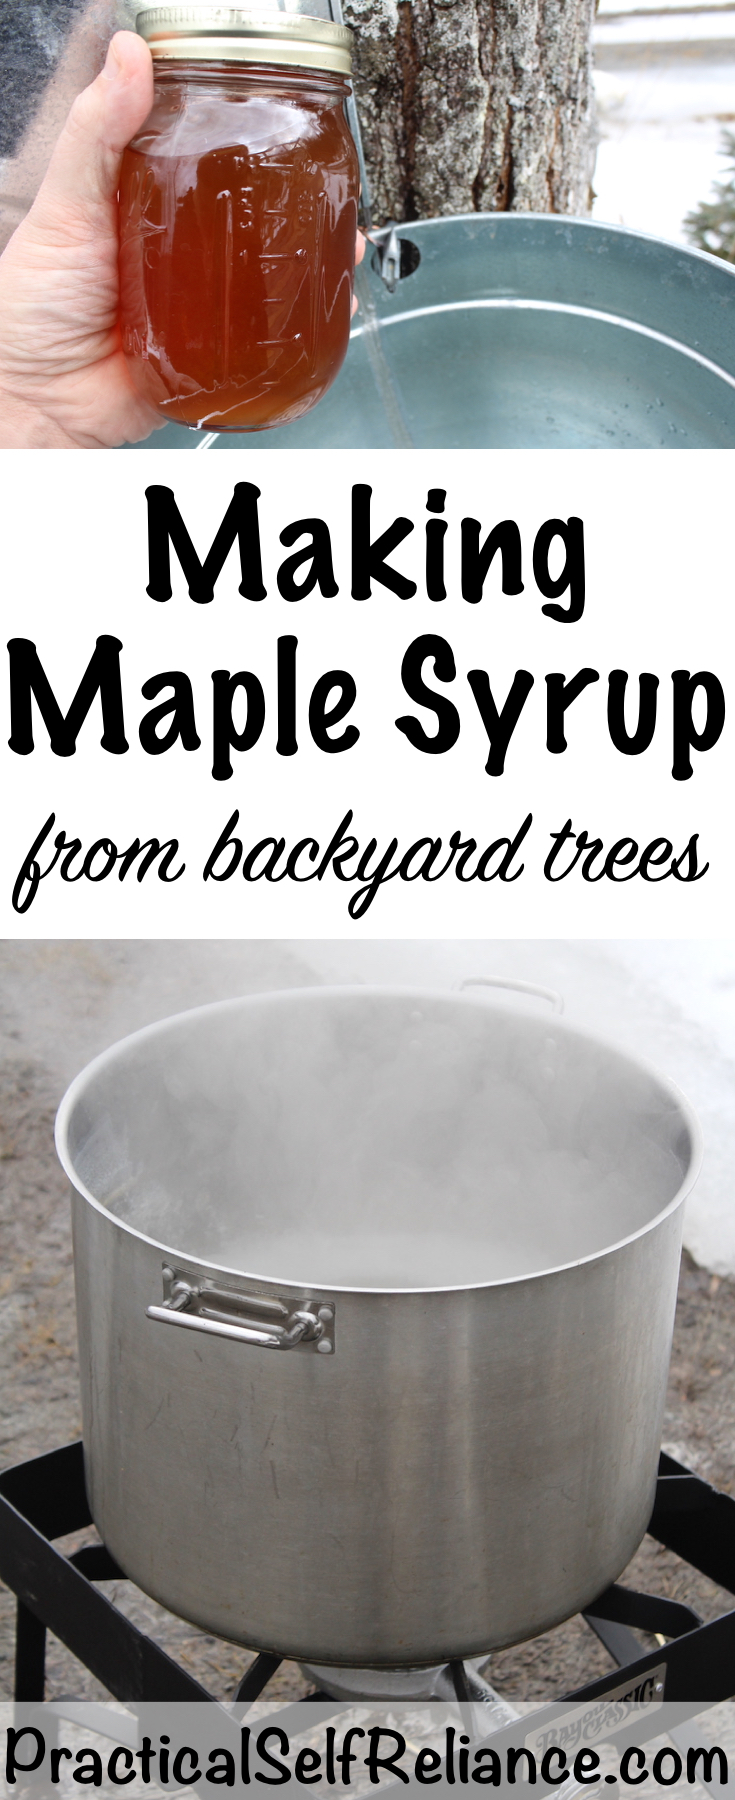 Making Maple Syrup from Backyard Trees